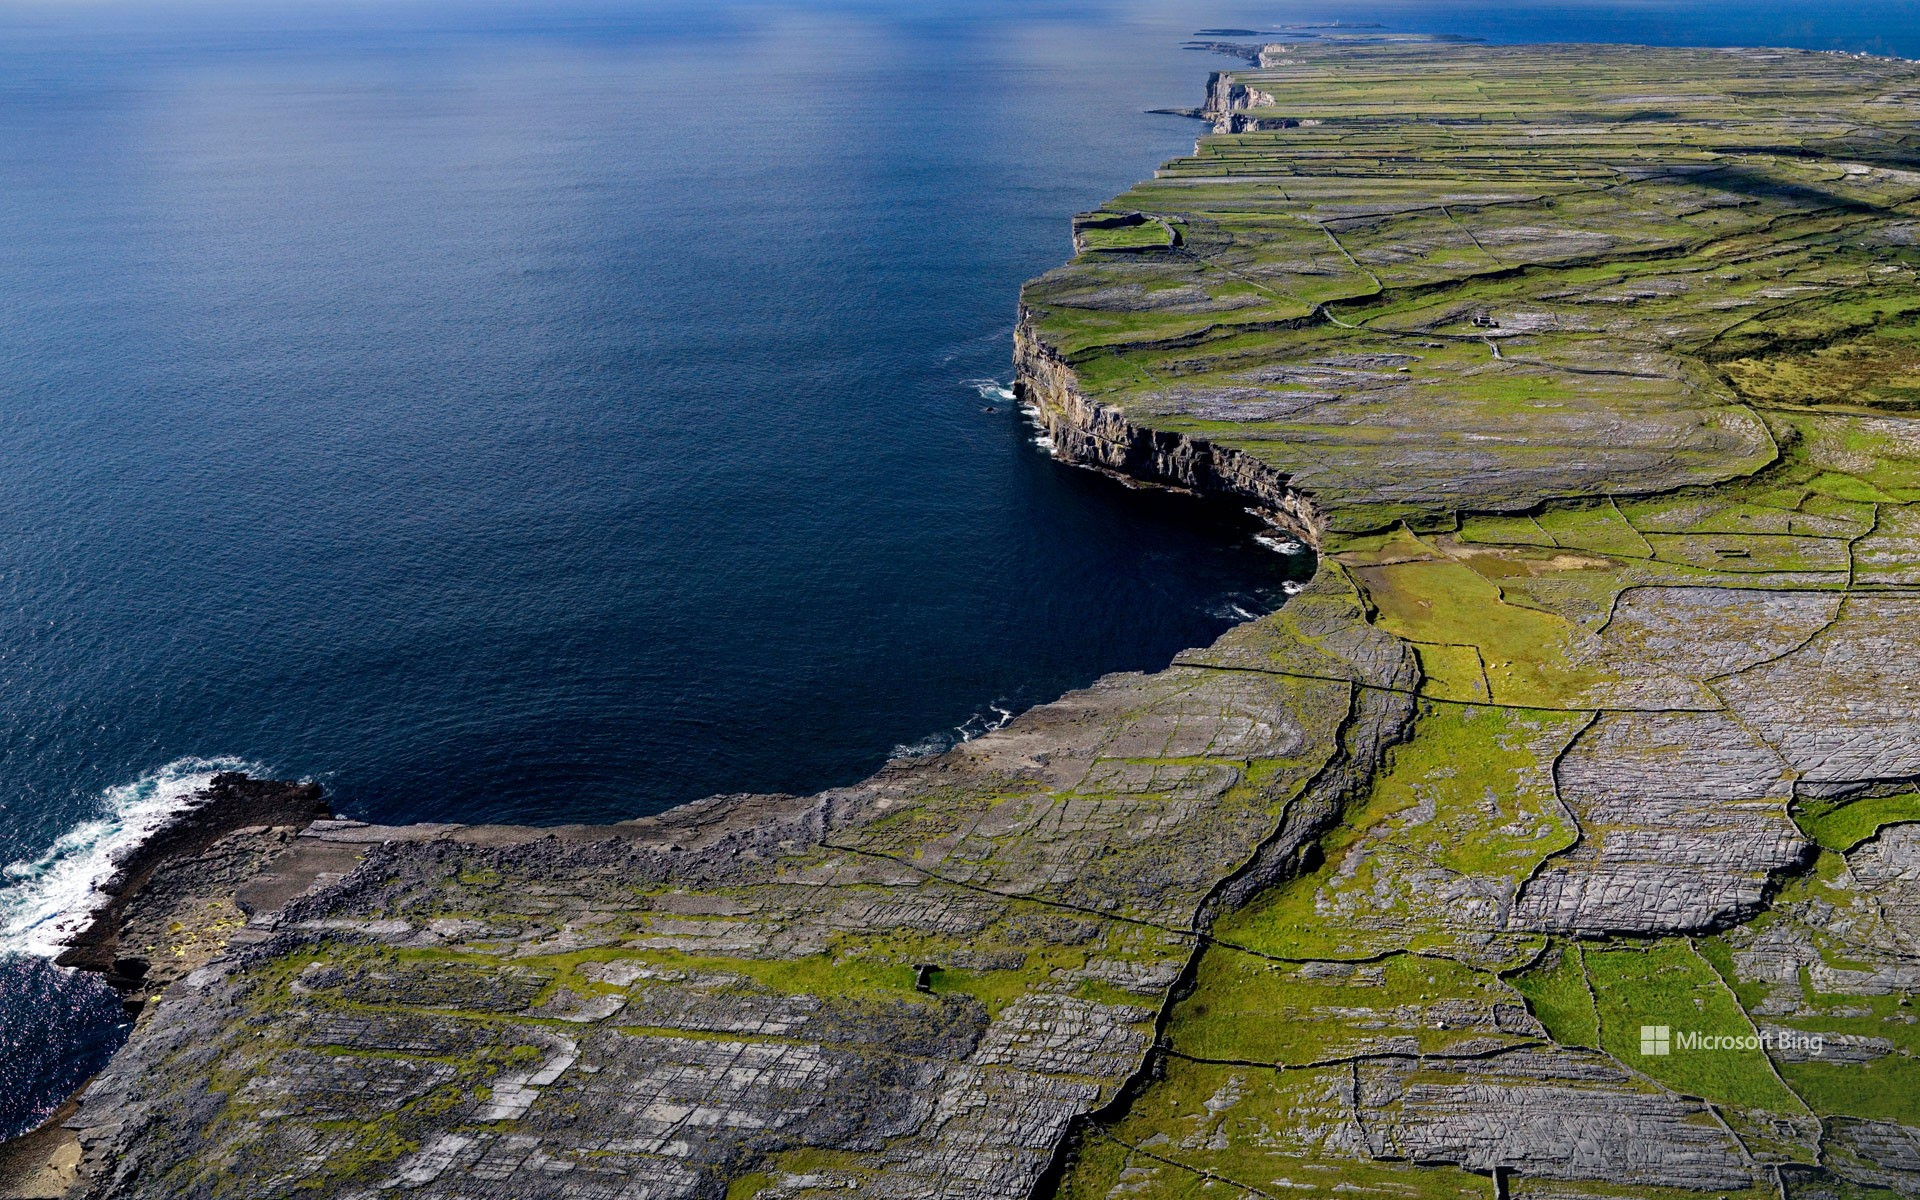 Inisheer, the smallest of the three Aran Islands in Galway Bay, Ireland